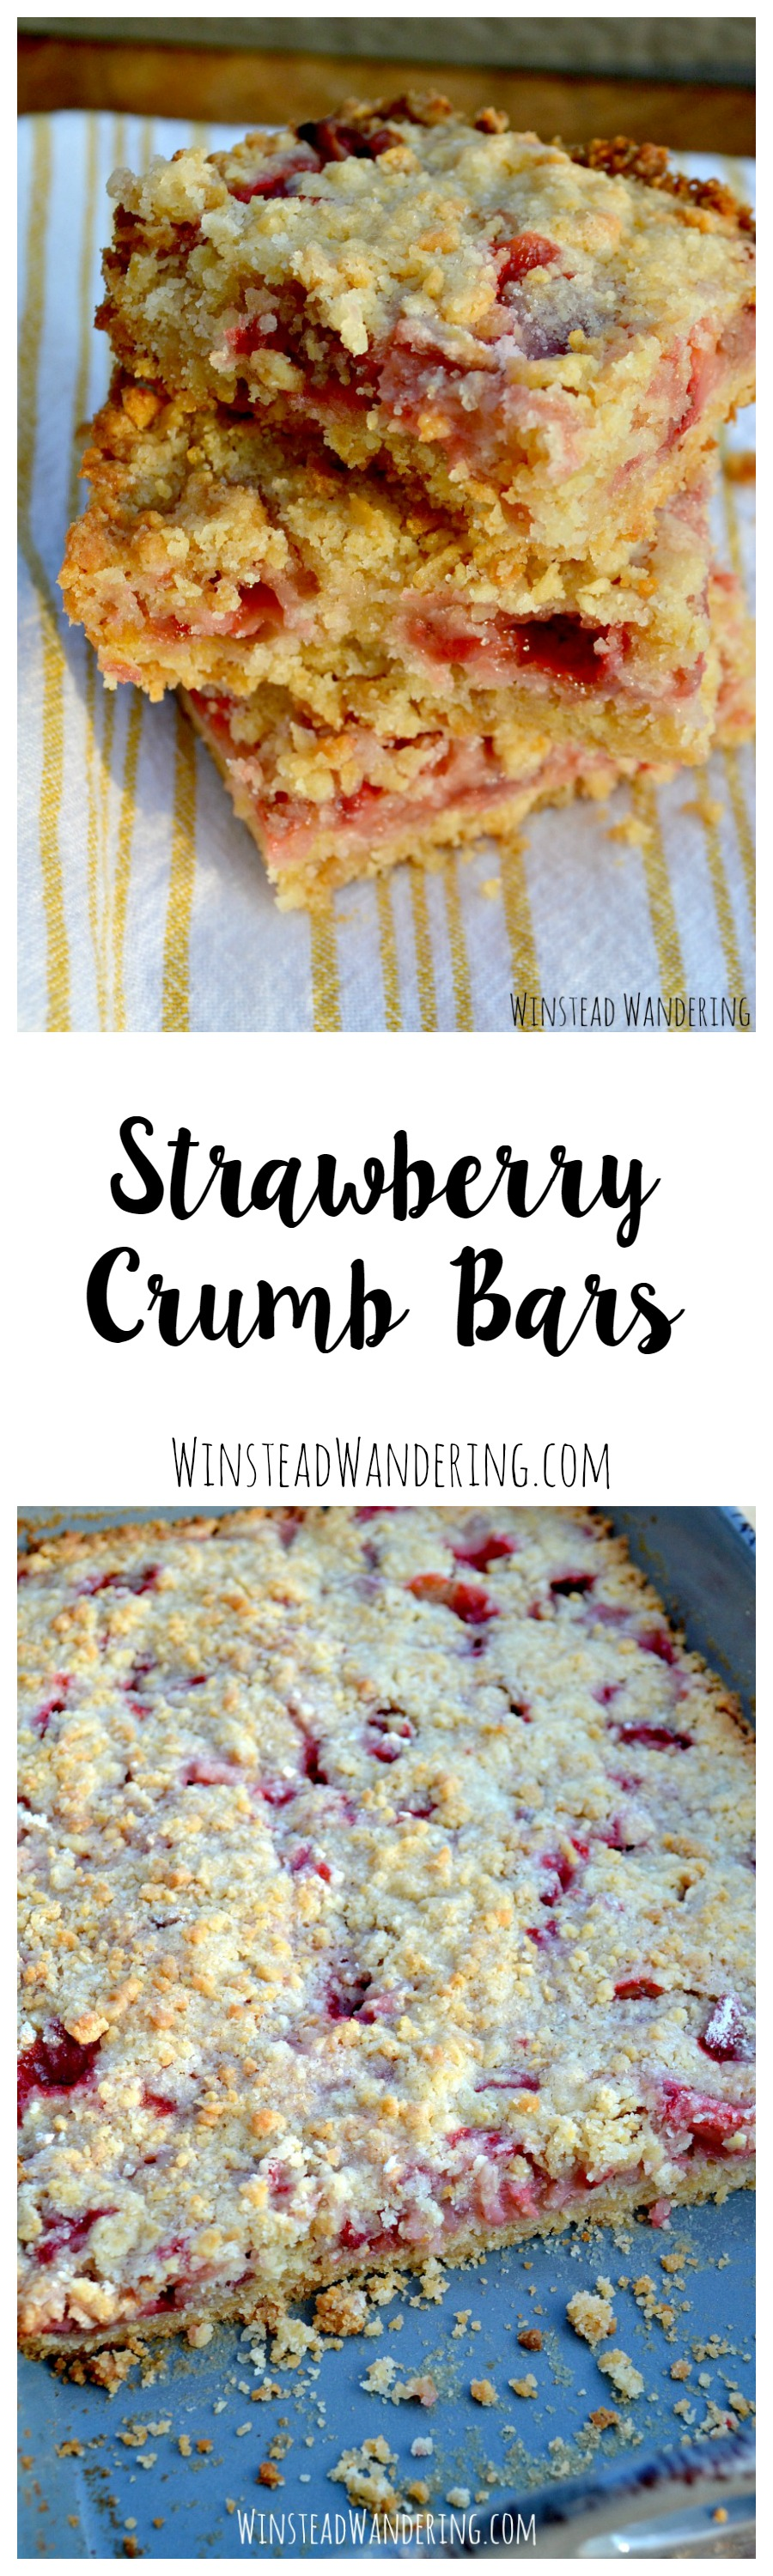 Strawberry crumb bars have a buttery crust, a layer of fresh berries, and a sweet topping that bakes up golden brown for the slightest hint of crunch.